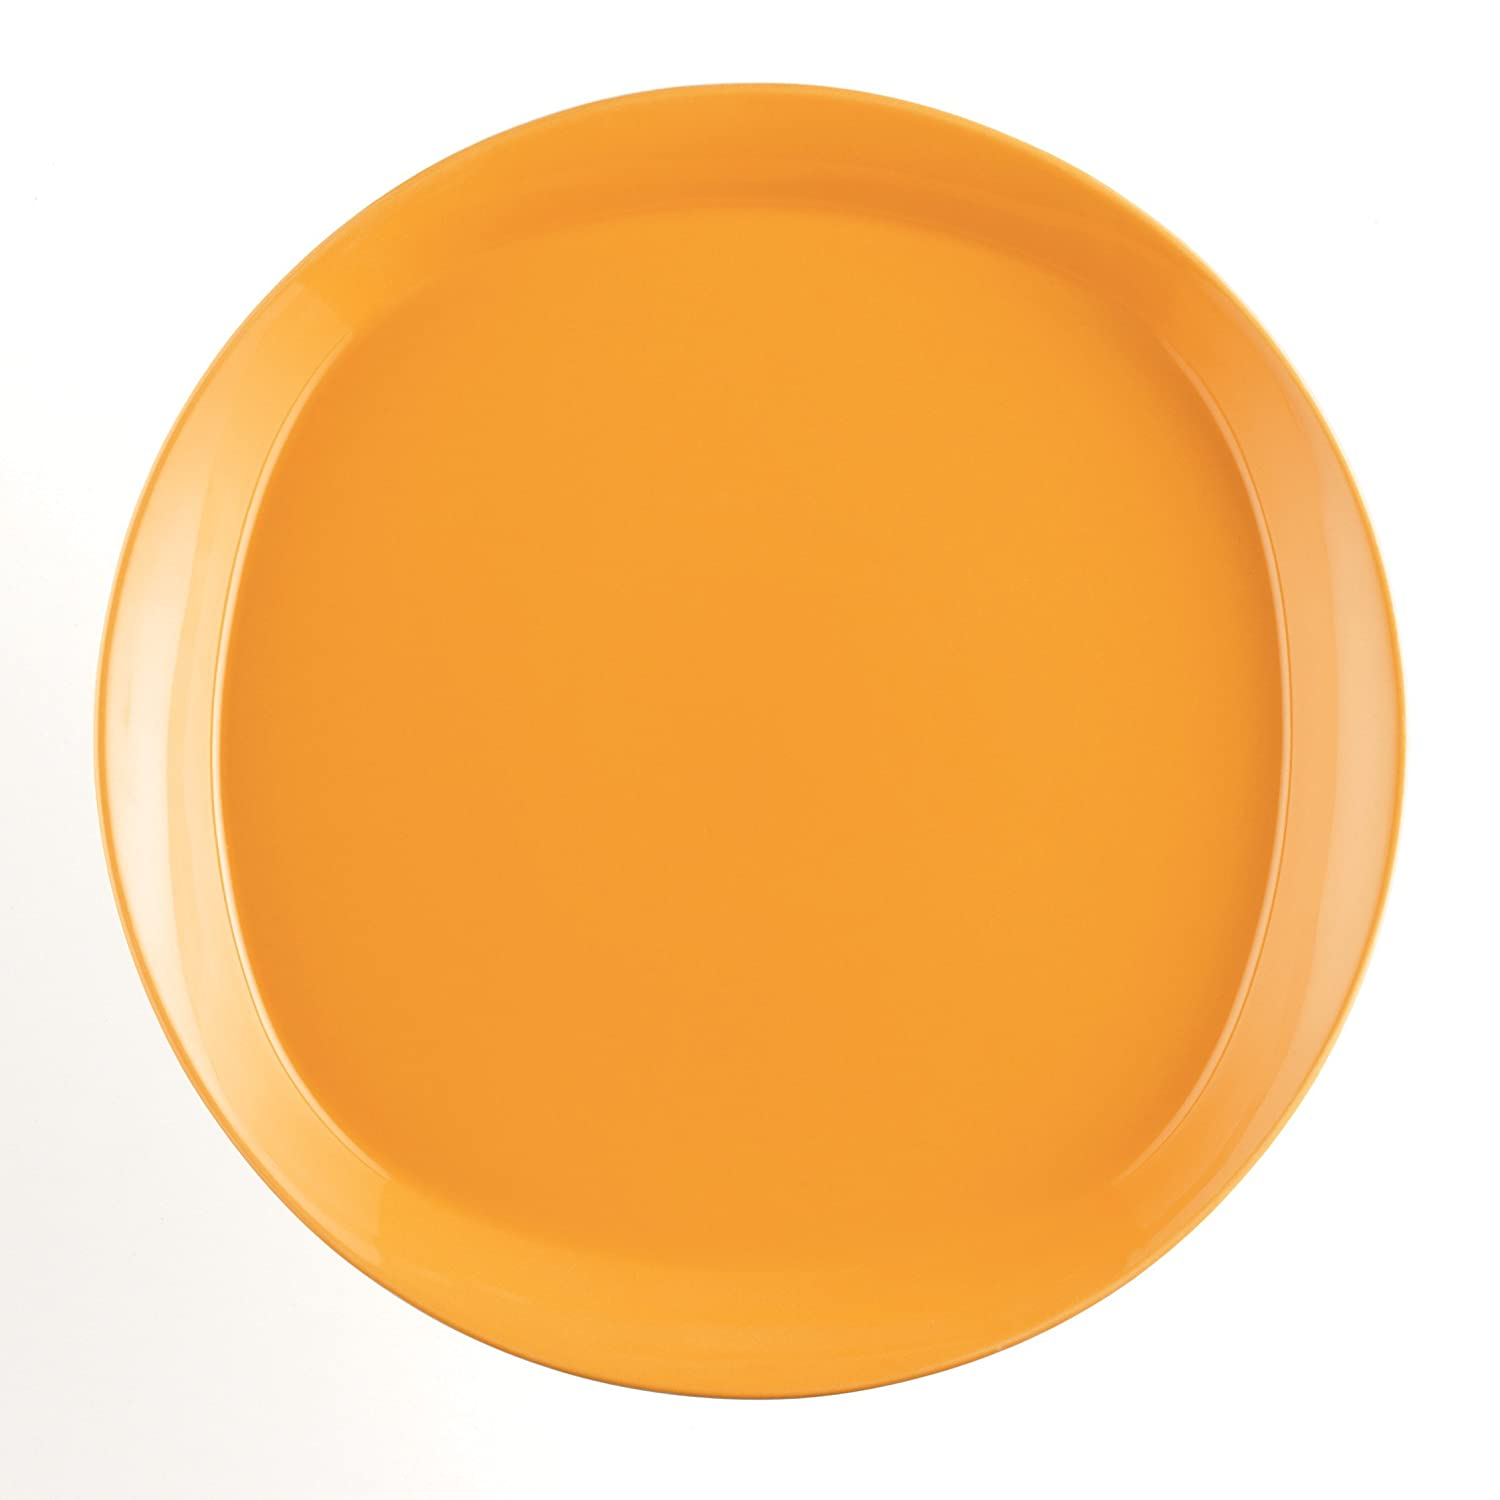 Amazon.com | Rachael Ray Dinnerware Round and Square 16-Piece Dinnerware Set Yellow Yellow Plate Set Dinnerware Sets  sc 1 st  Amazon.com & Amazon.com | Rachael Ray Dinnerware Round and Square 16-Piece ...